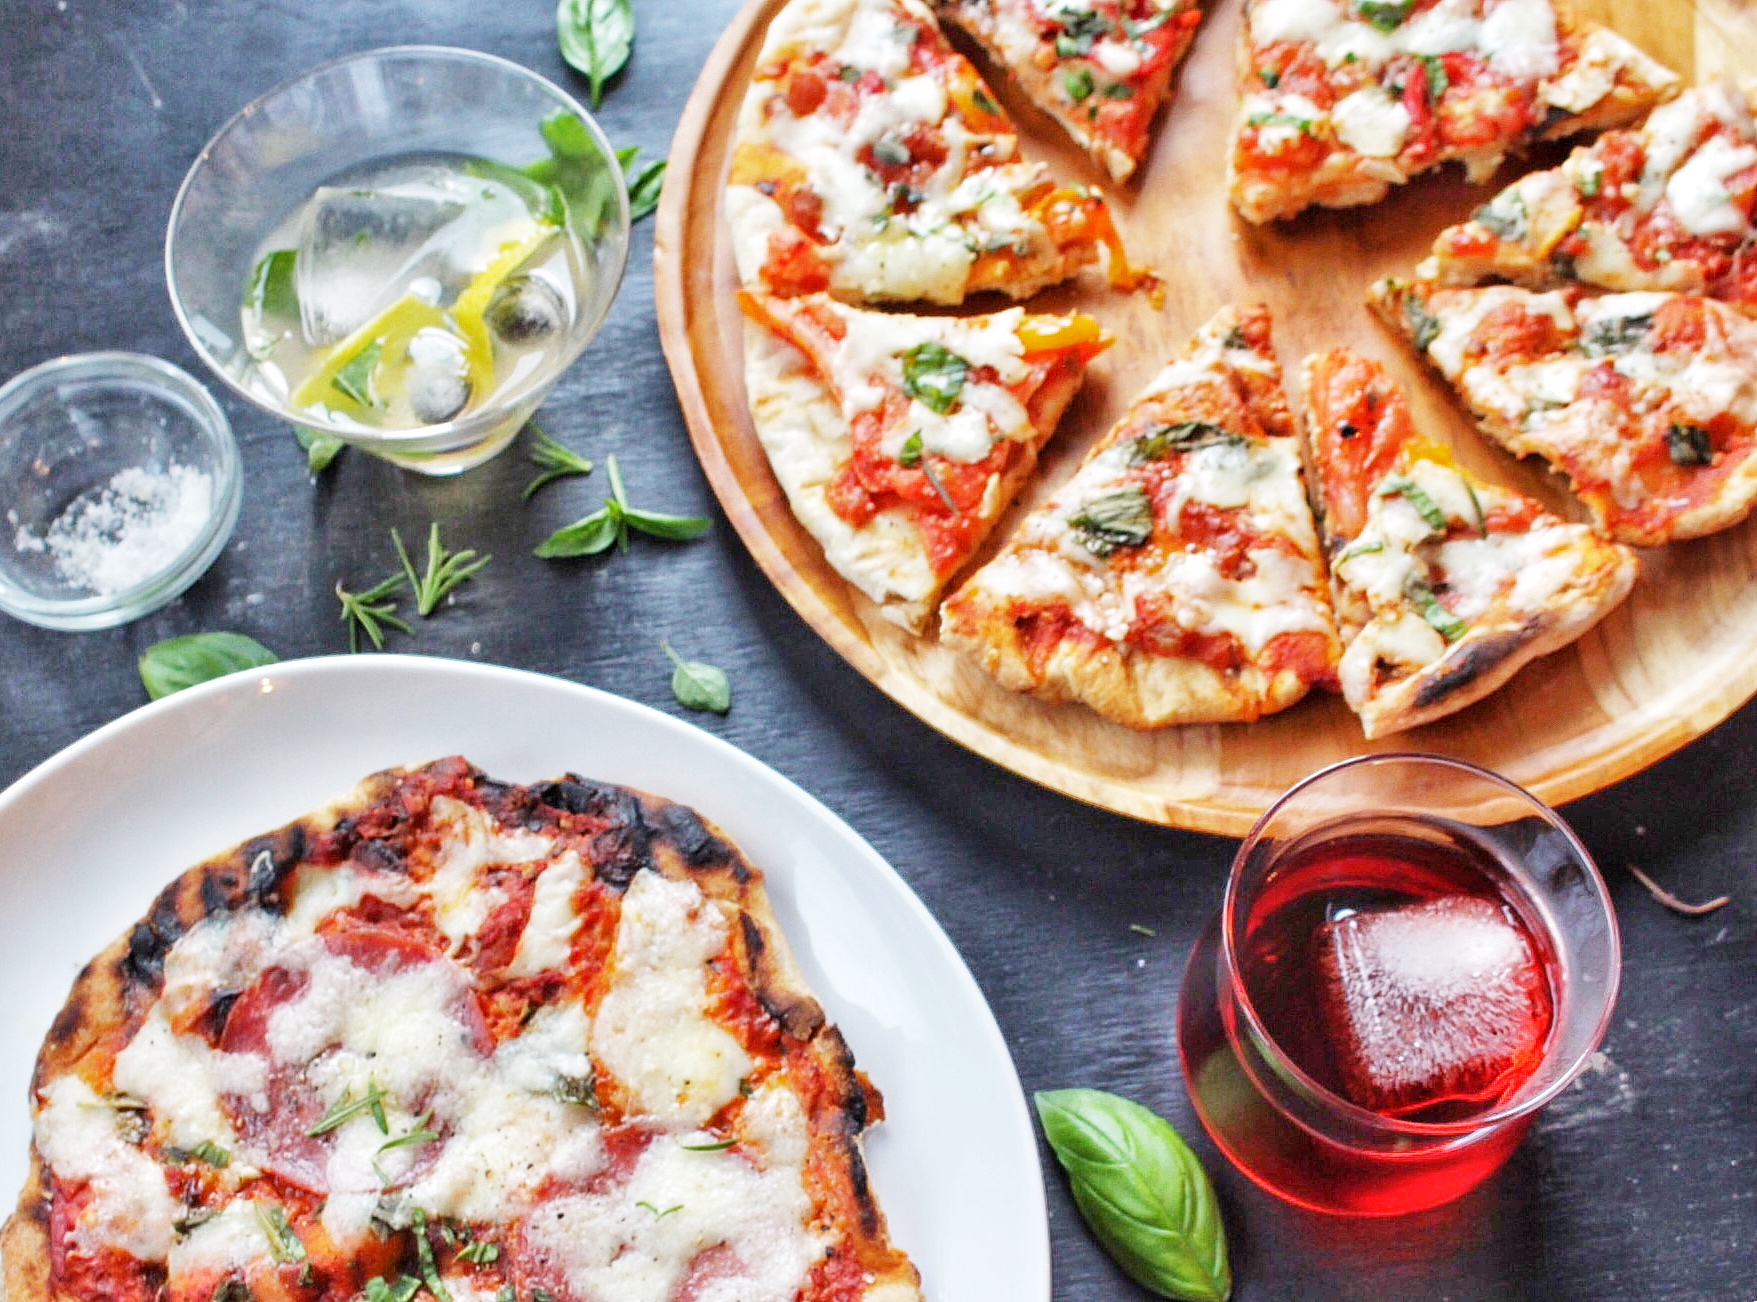 All of It - Grilled Pizza and cocktails